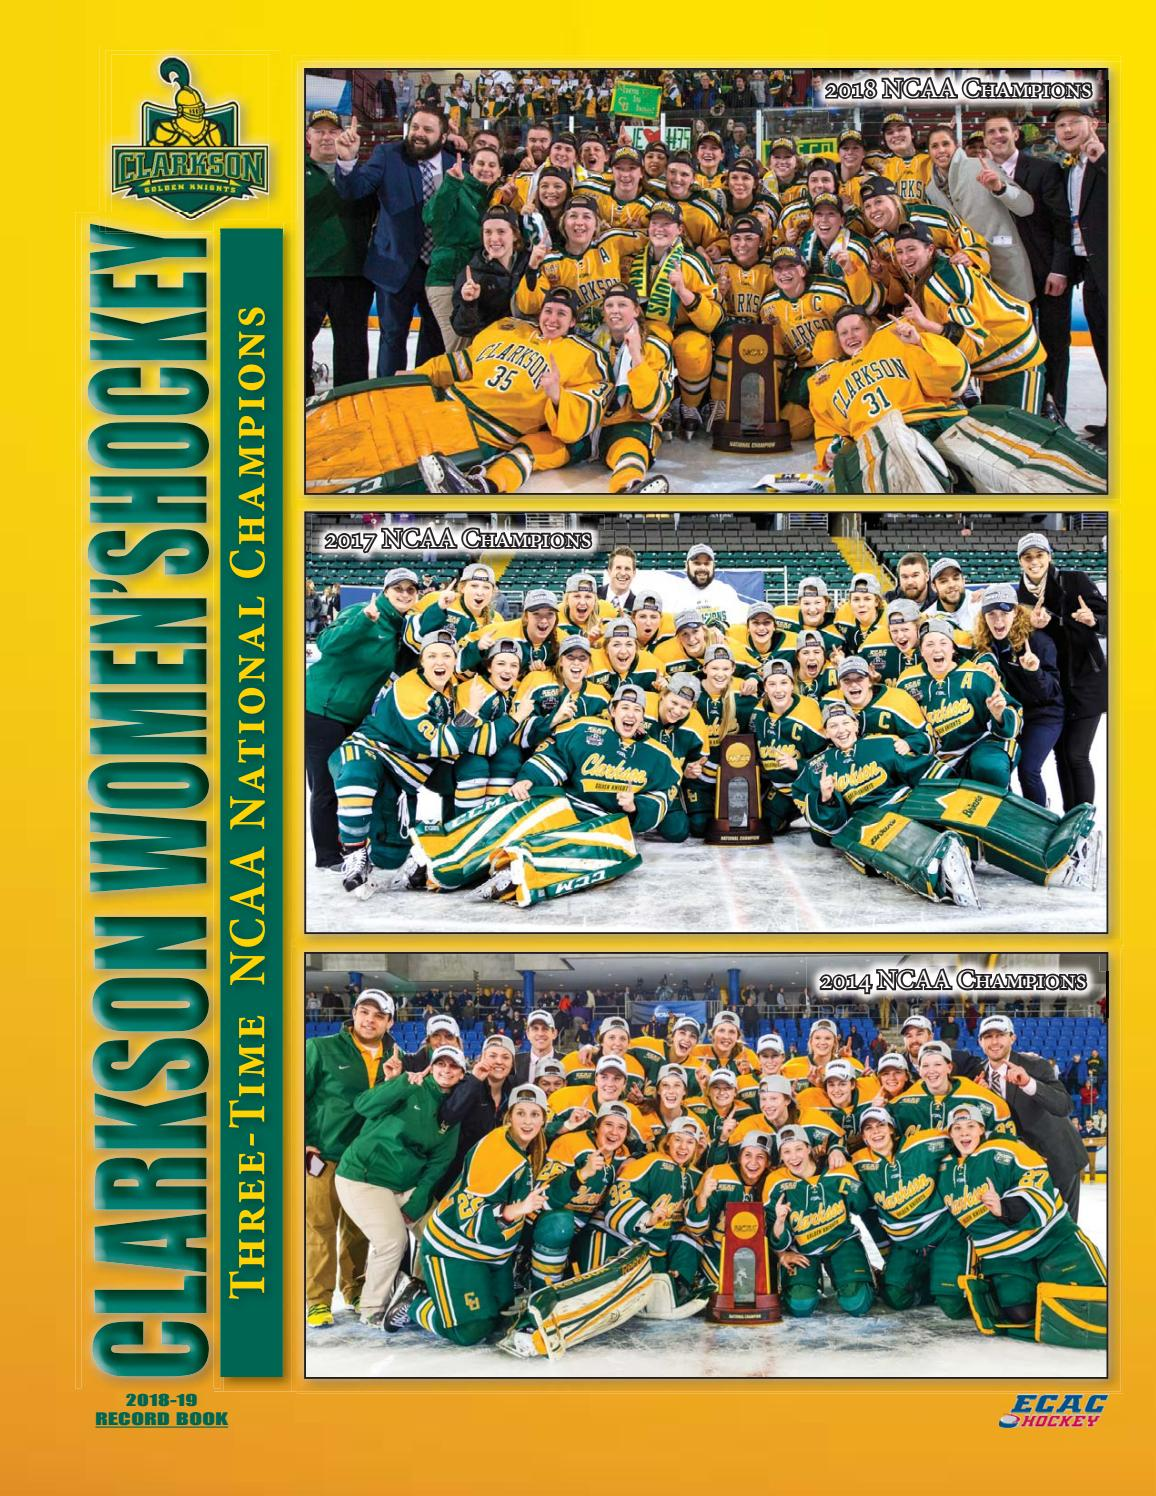 4cf9ca3973 2018-19 Clarkson University Women s Hockey Record Book by Gary Mikel - issuu